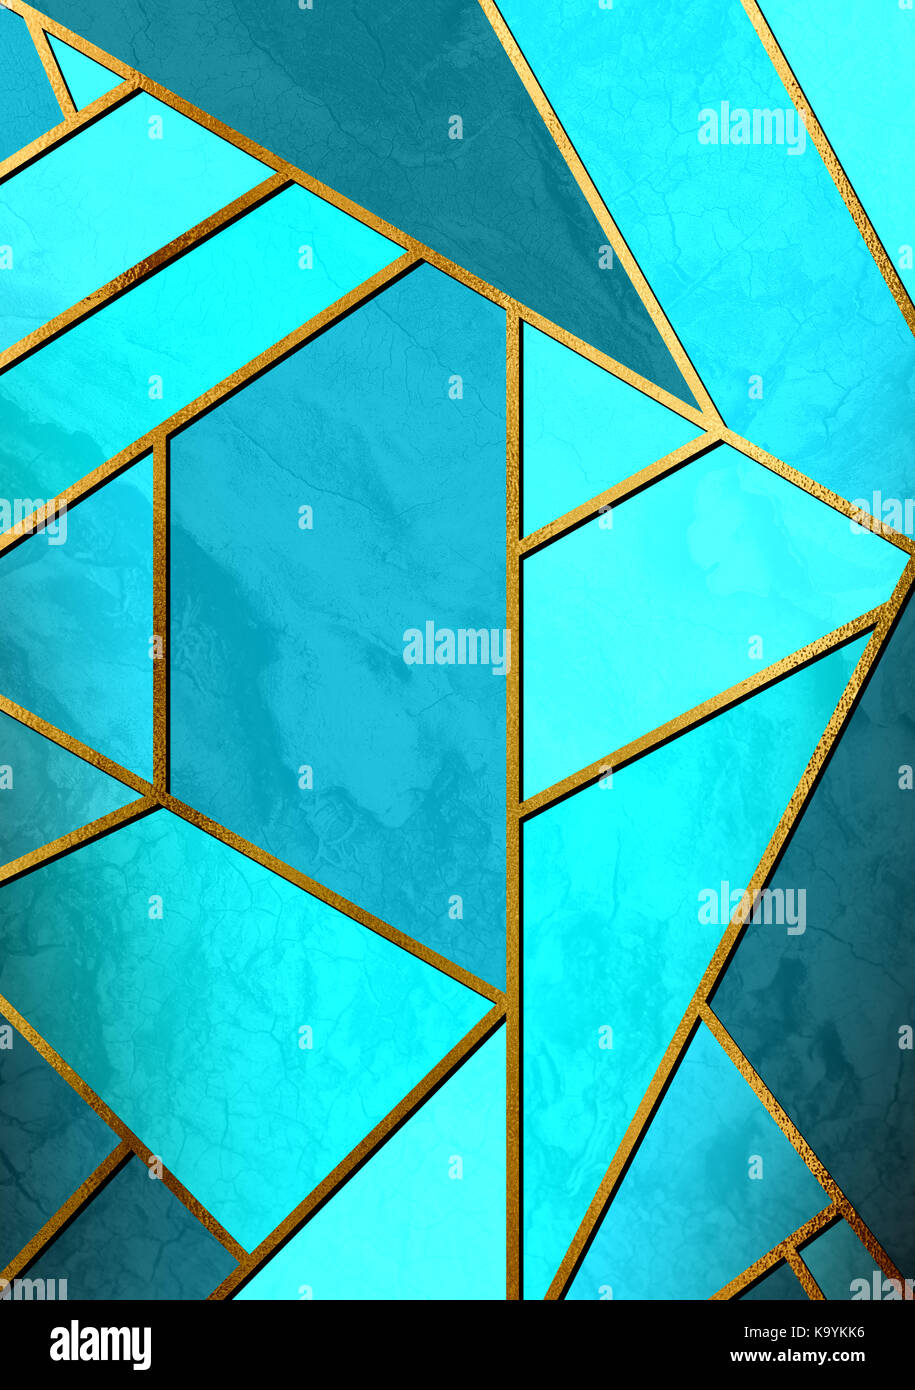 Modern And Stylish Abstract Design Poster With Golden